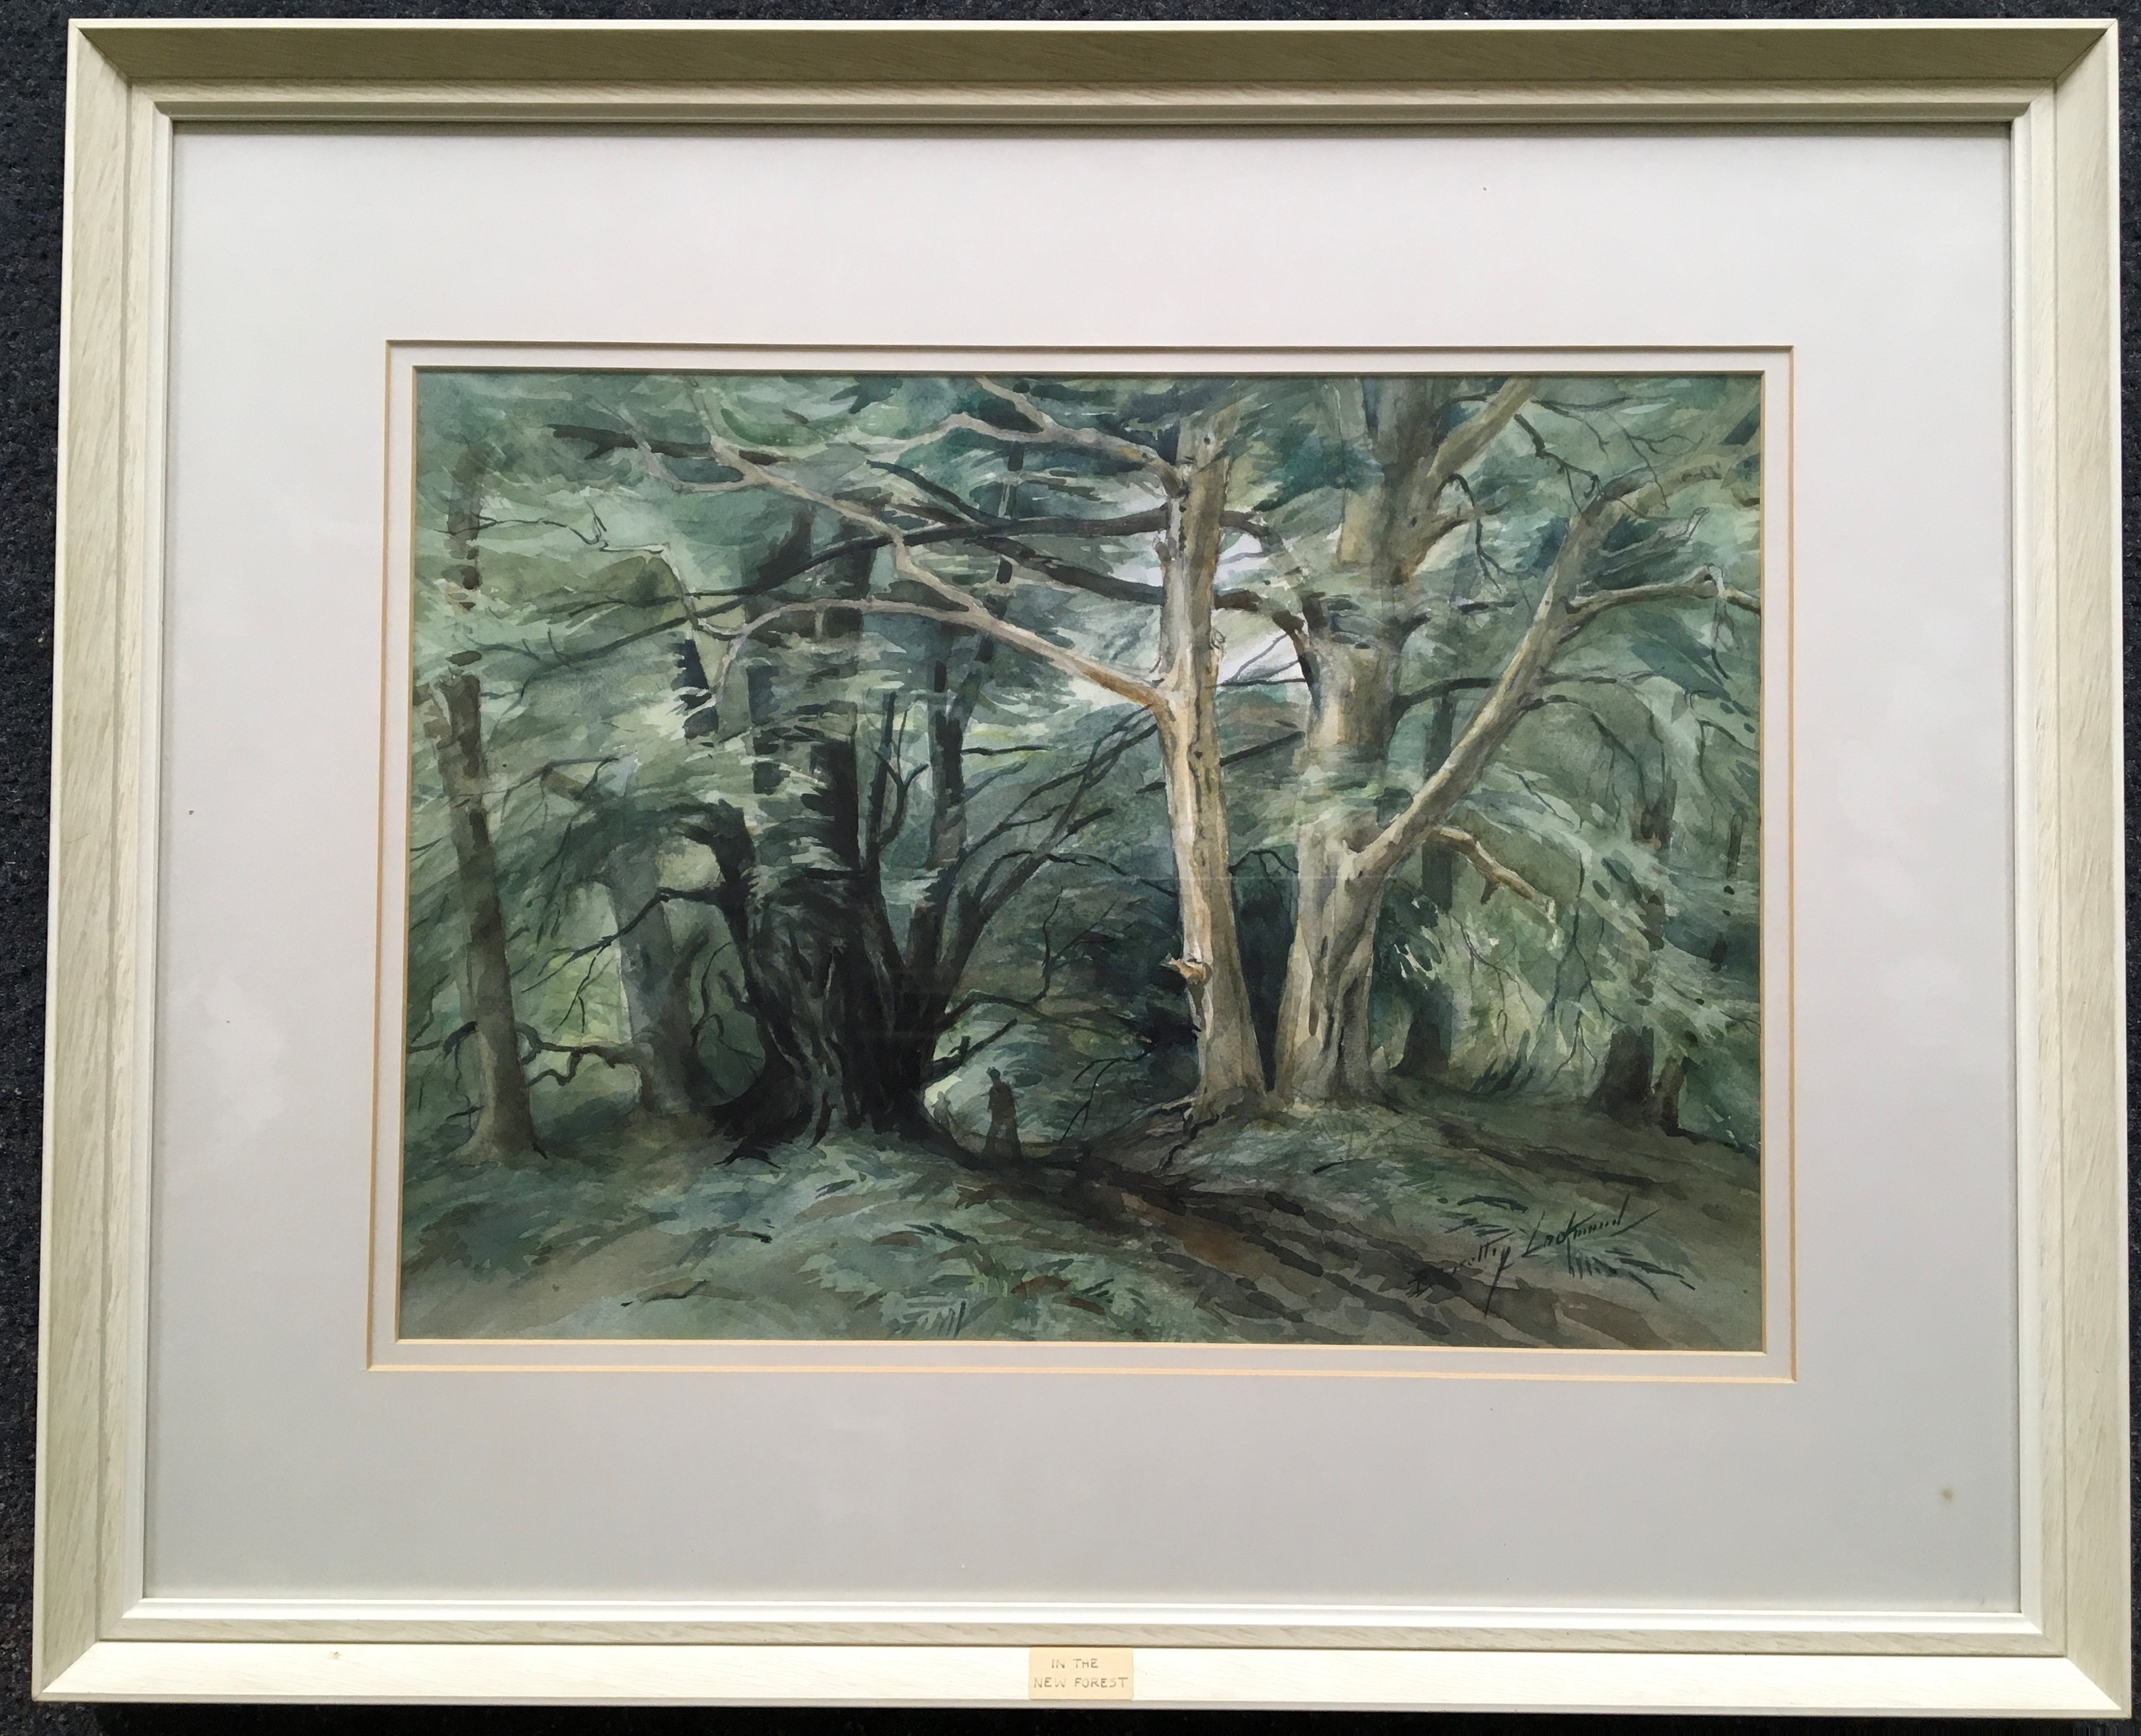 DOROTHY LOCKWOOD. Framed, signed and titled 'The New Forest', watercolour on paper, figures